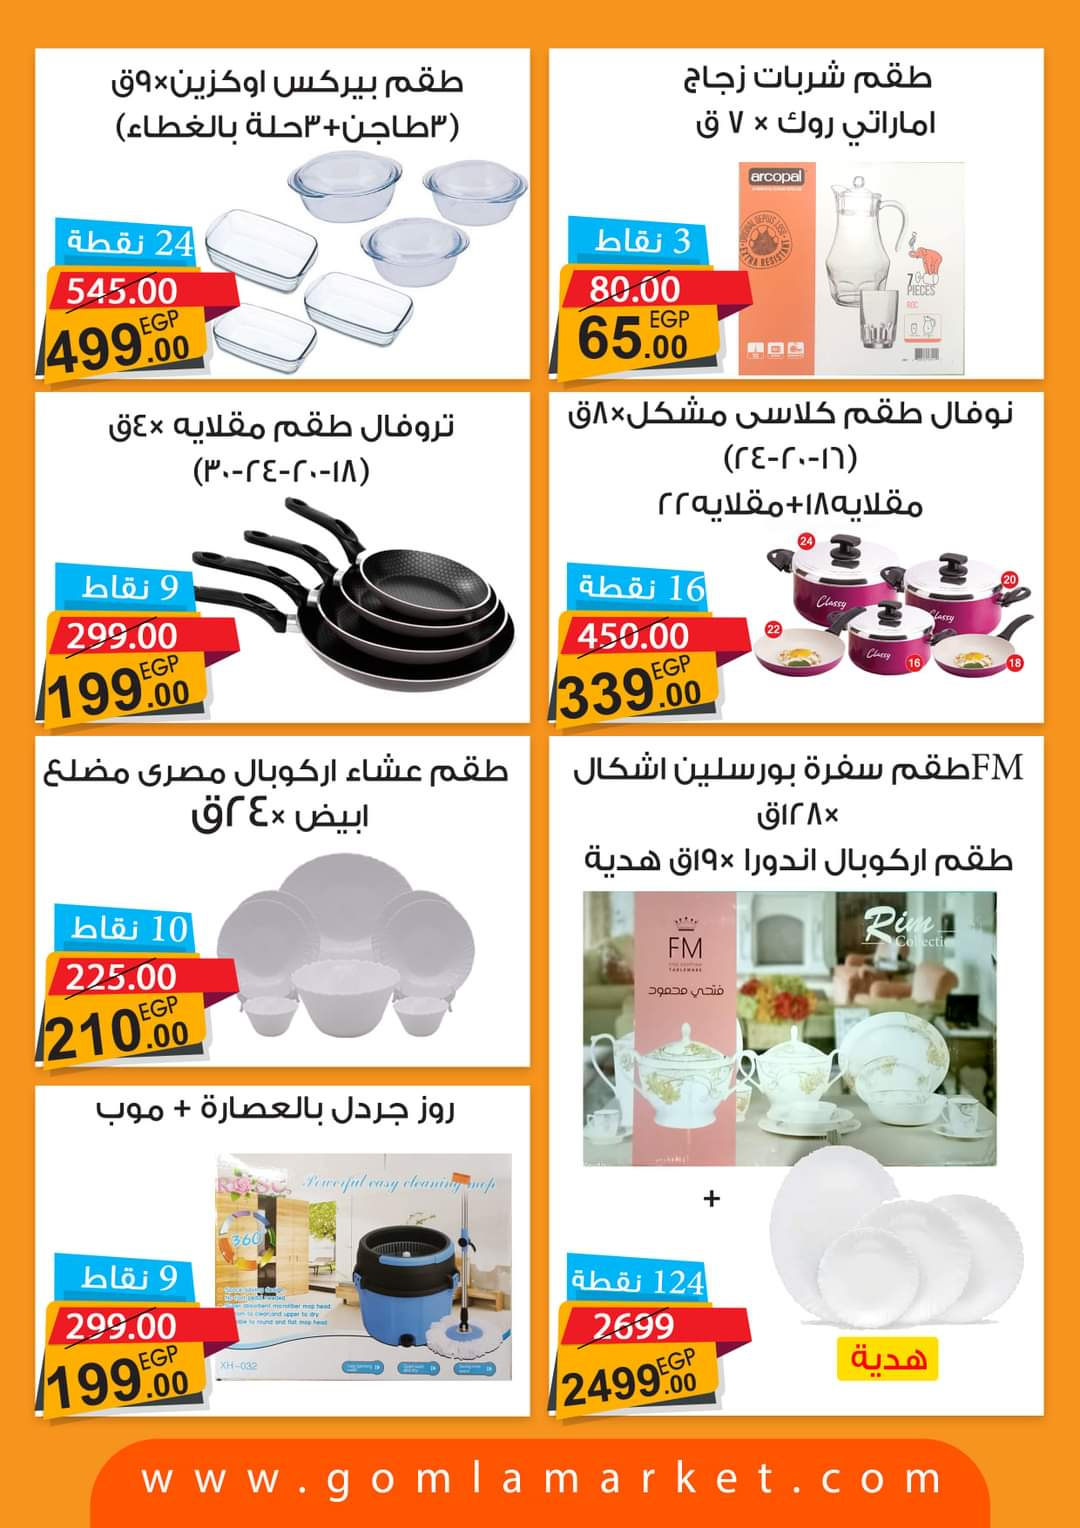 Discounts on household items